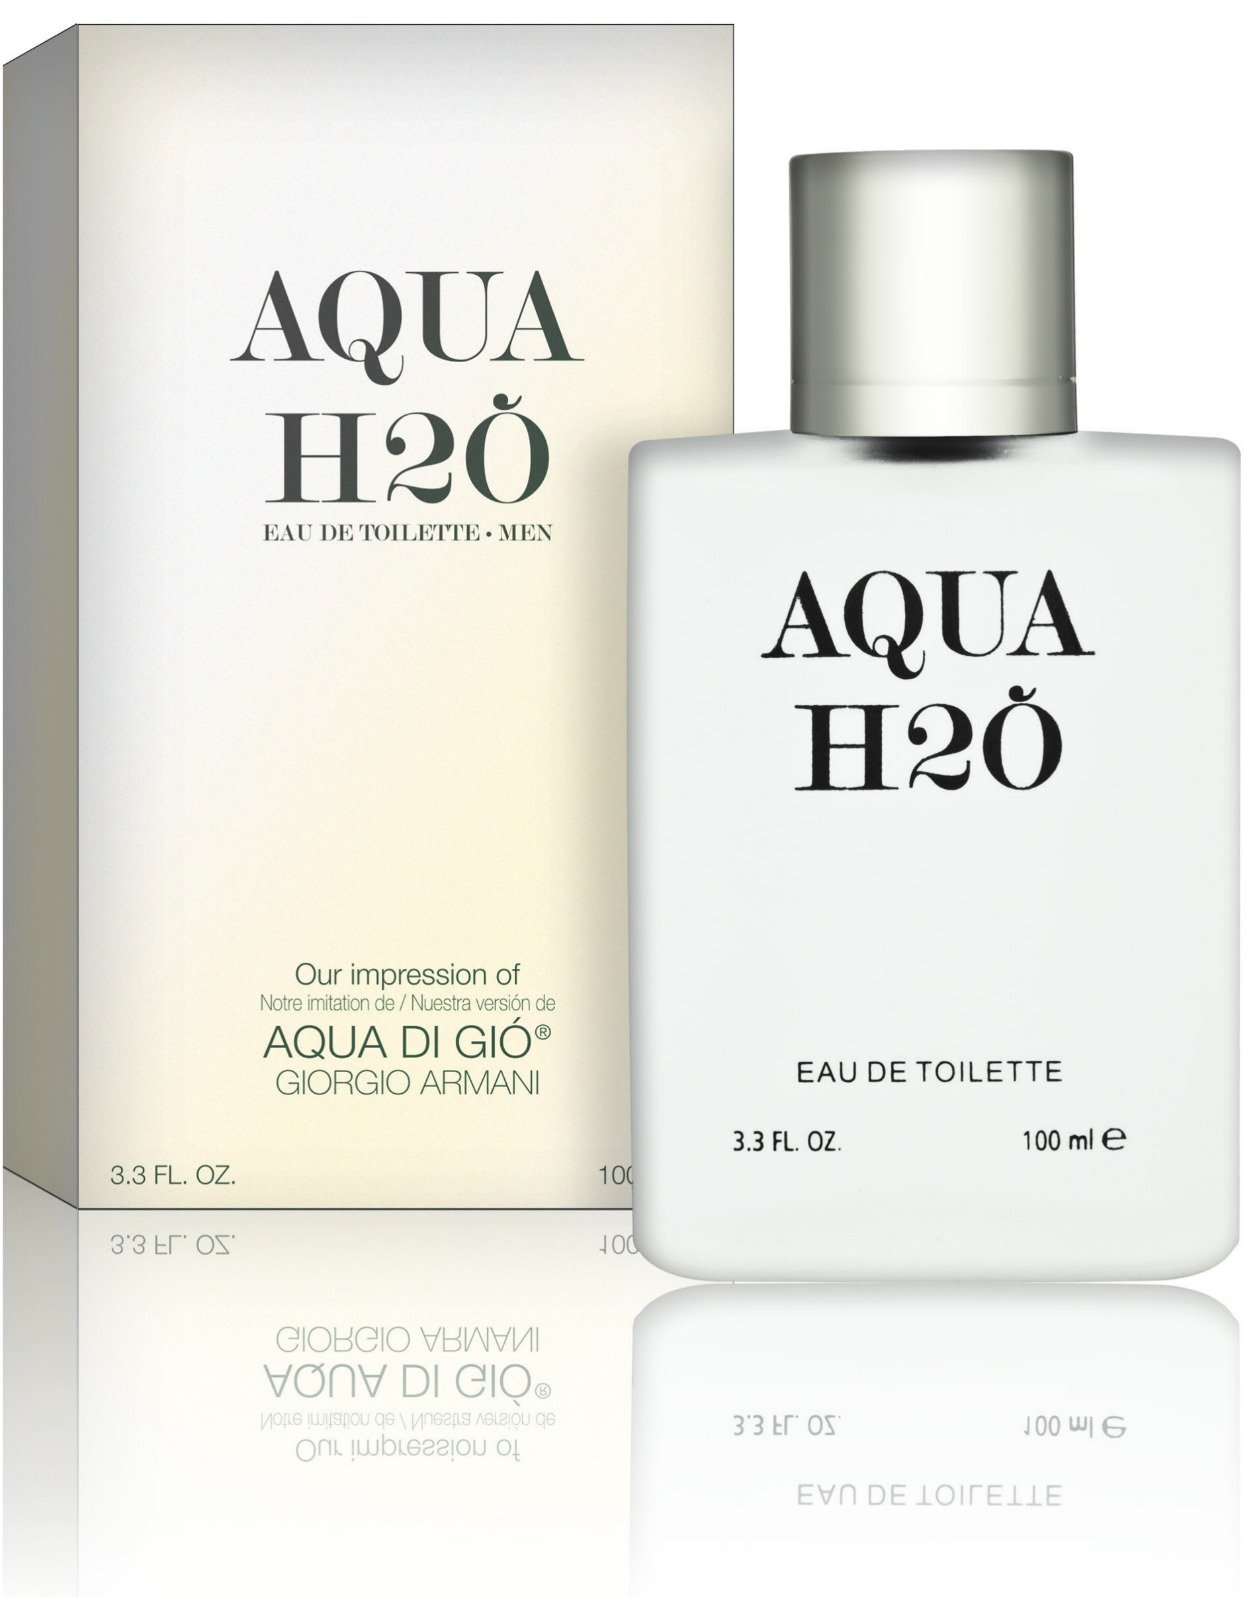 Recaro North - Aqua H2O - Eau De Toilette - Impression of Aqua Di Gio,